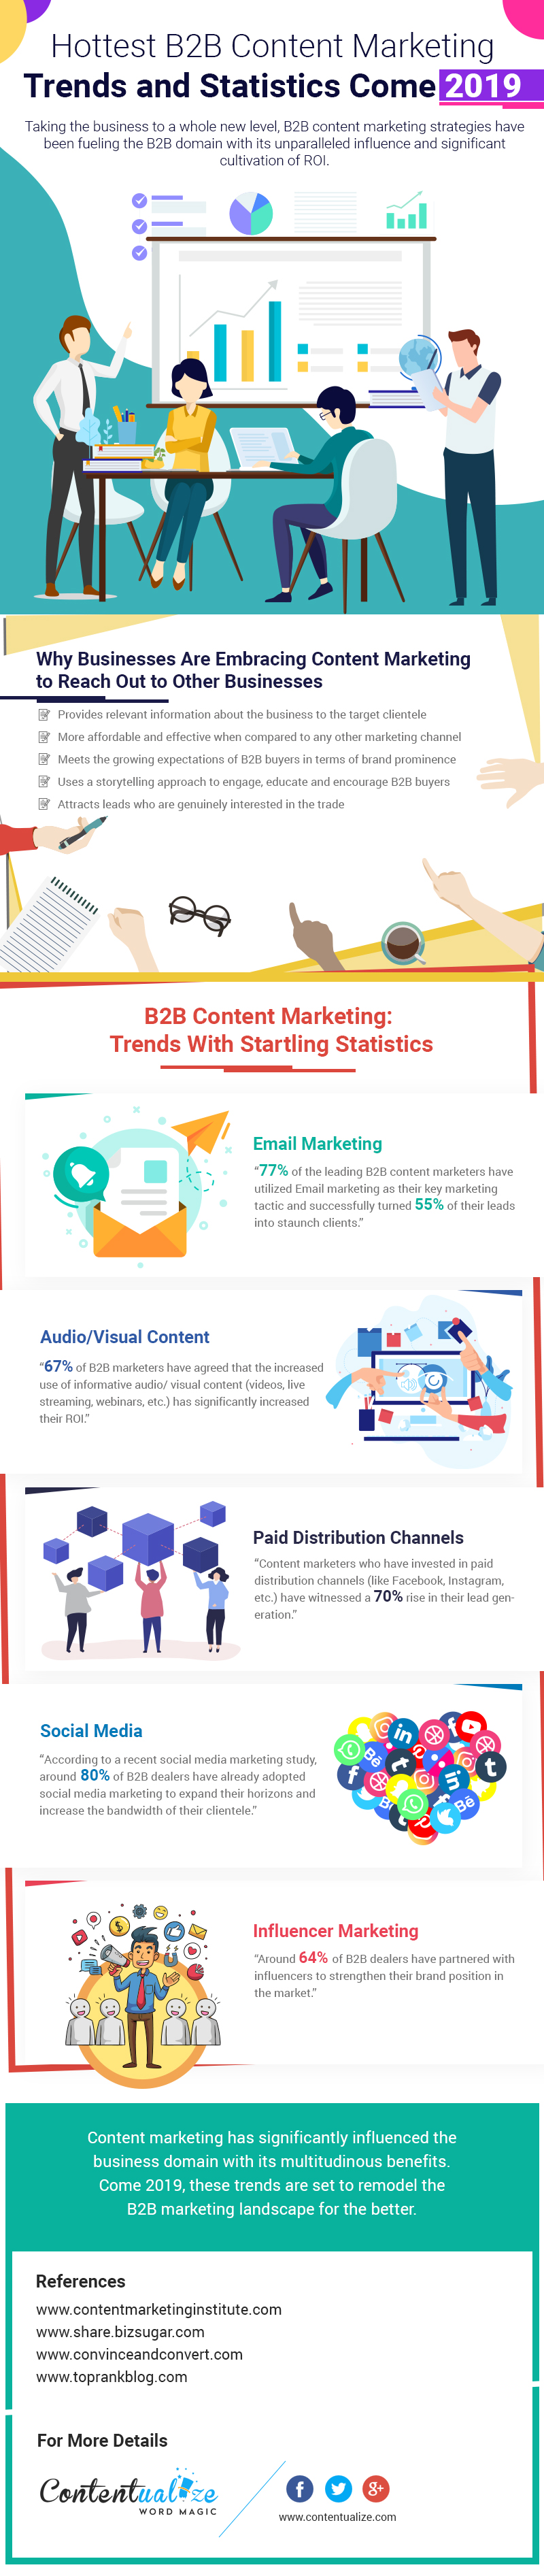 Hottest-B2B-Content-Marketing-Trends-and-Statistics-in-2019